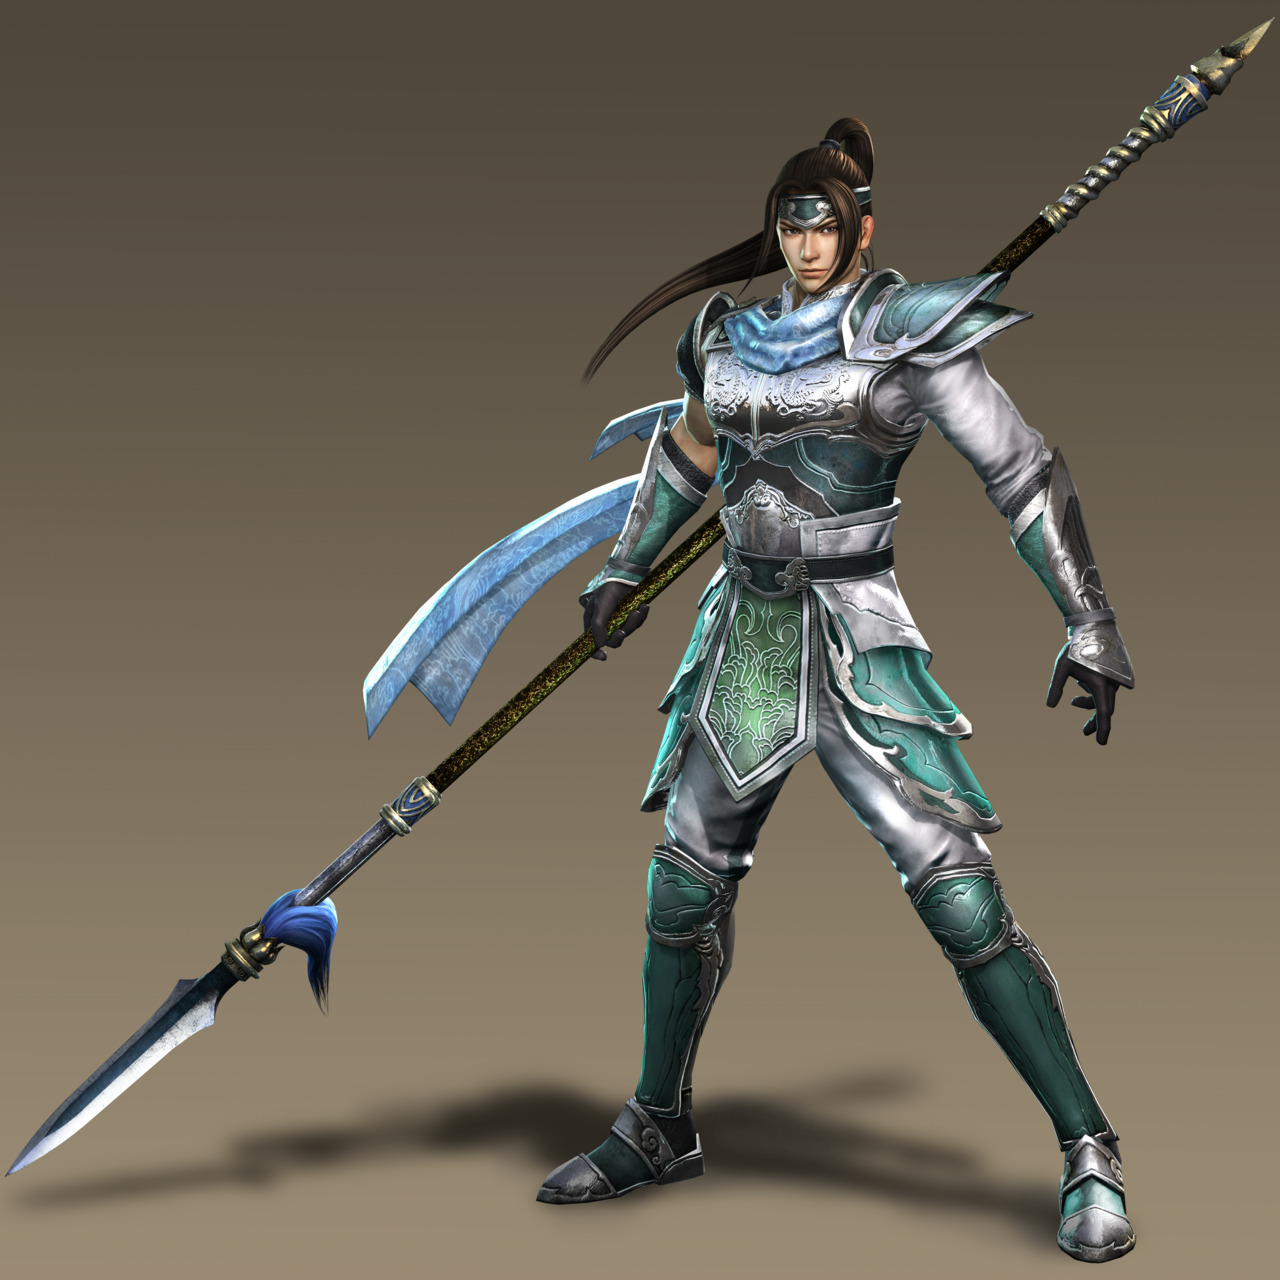 Dynasty warriors games post your favorite characters for Decor 52 fan celano ma dw